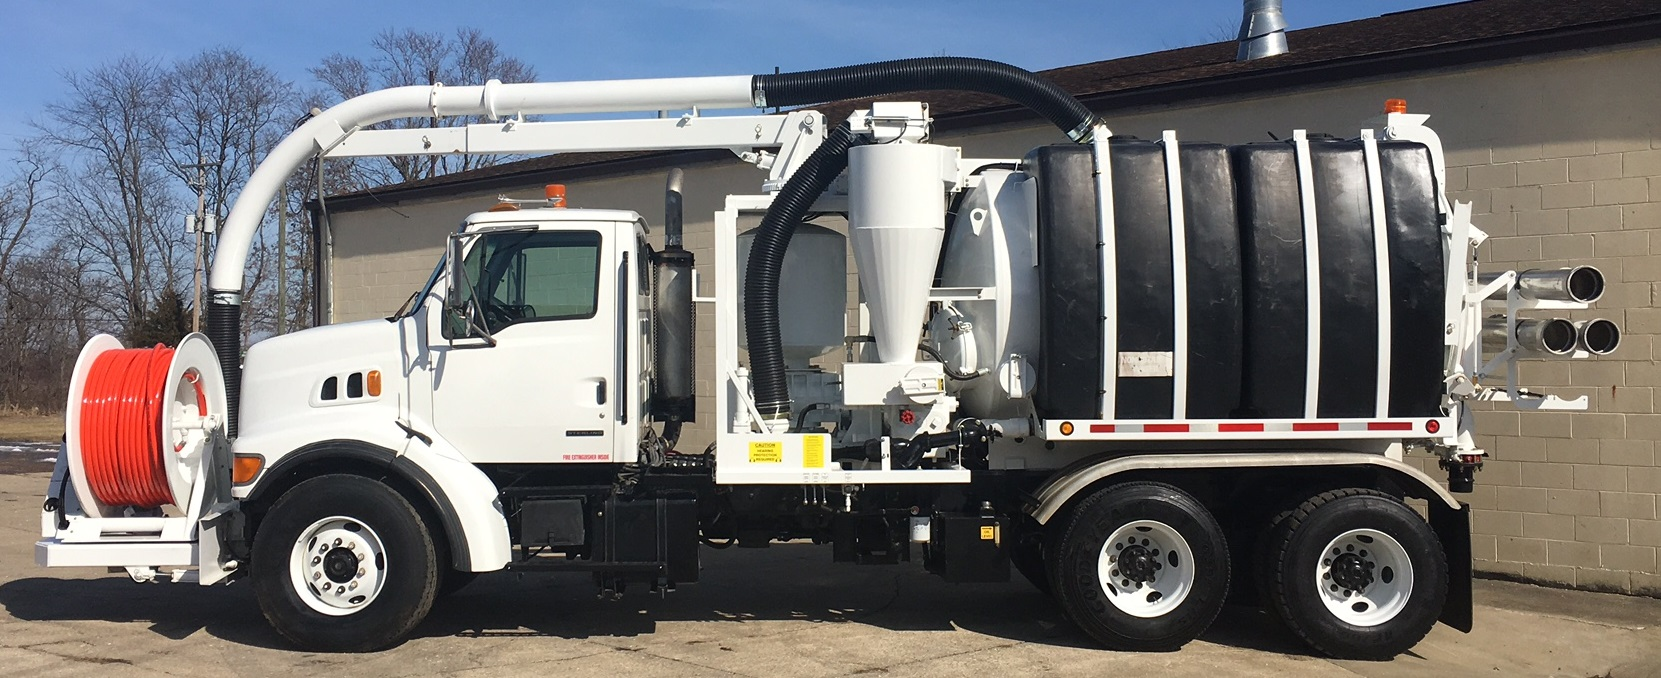 2000 Super Products Camel Combination Sewer Cleaner